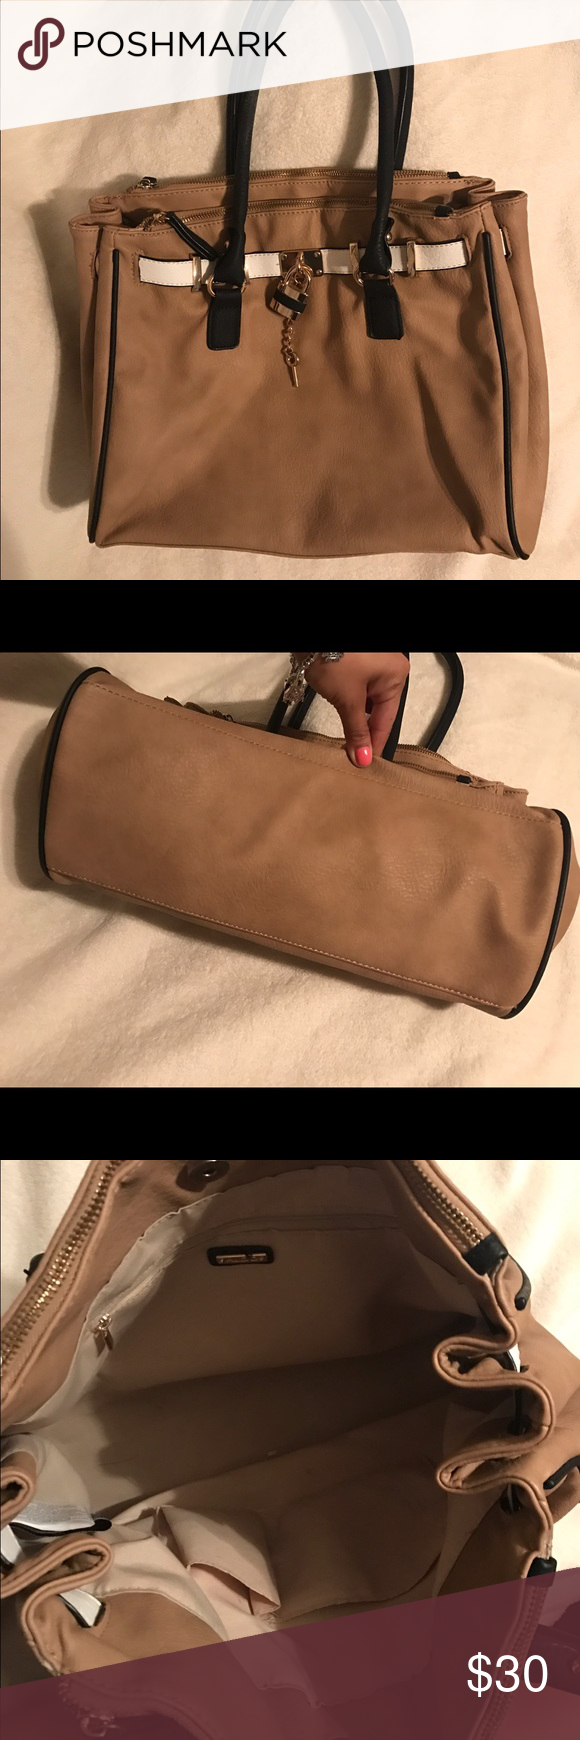 Aldo Satchel Tan Aldo satchel with black handles and gold accents! Used but in good condition. Has a small black mark as shown on the last pic not noticeable and a small jean rubbing mark on the back of the purse. Let me know if you have questions. Aldo Bags Satchels